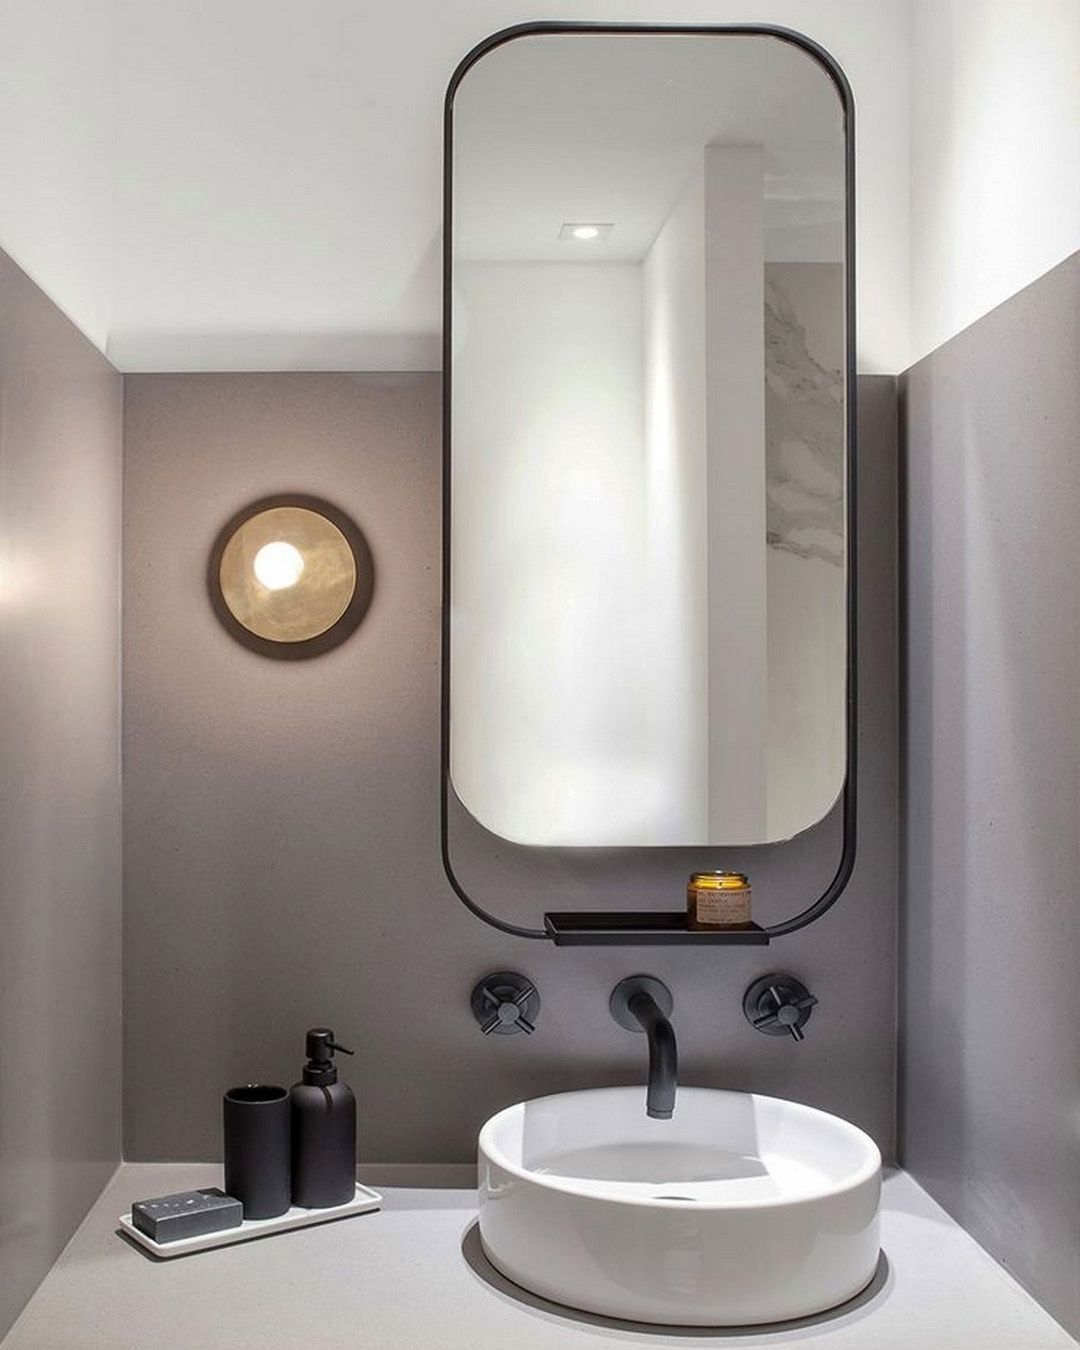 51 Modern Faucet Design Inspirations | Pinterest | Bath, Interiors on updated wallpaper designs, updated small kitchens, updated master bedroom designs, updated shower designs, updated laundry room designs, updated office designs,